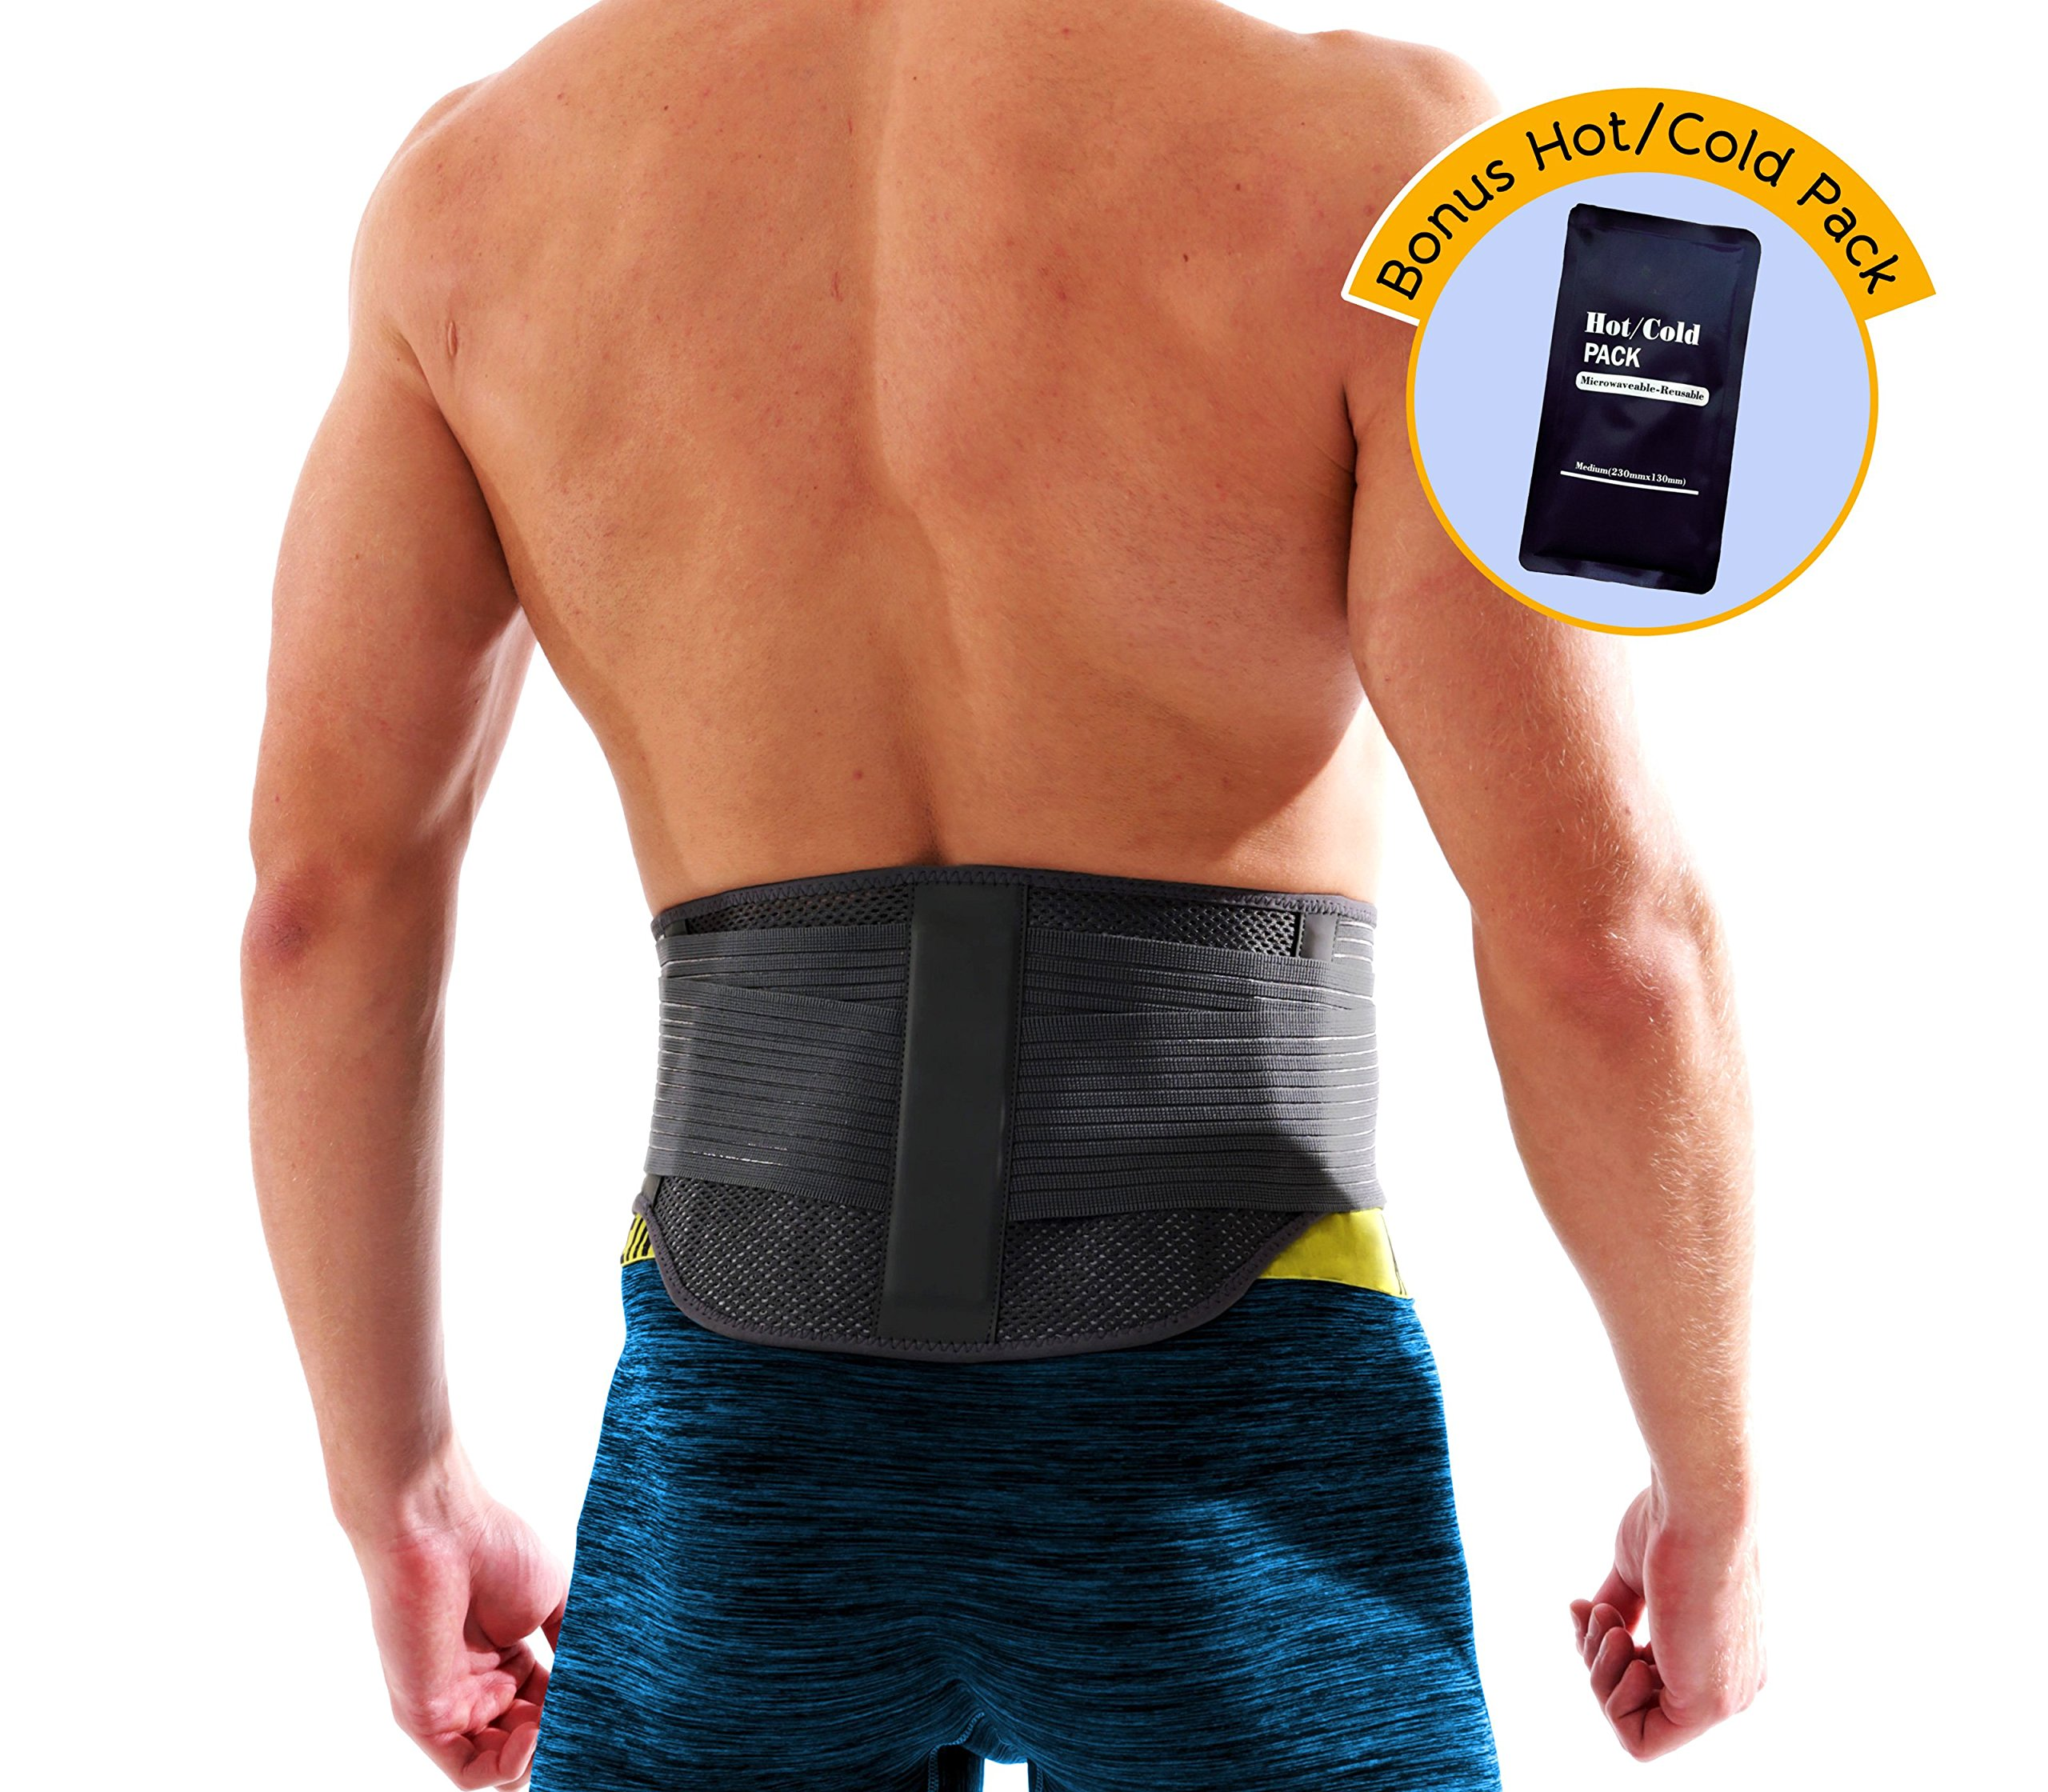 Lumbar Support Back Brace by MotuFit | Magnetic Therapy | Large Pocket for Hot Cold Pack | May Relieve Pain from Sciatica, Scoliosis, Muscle Spams